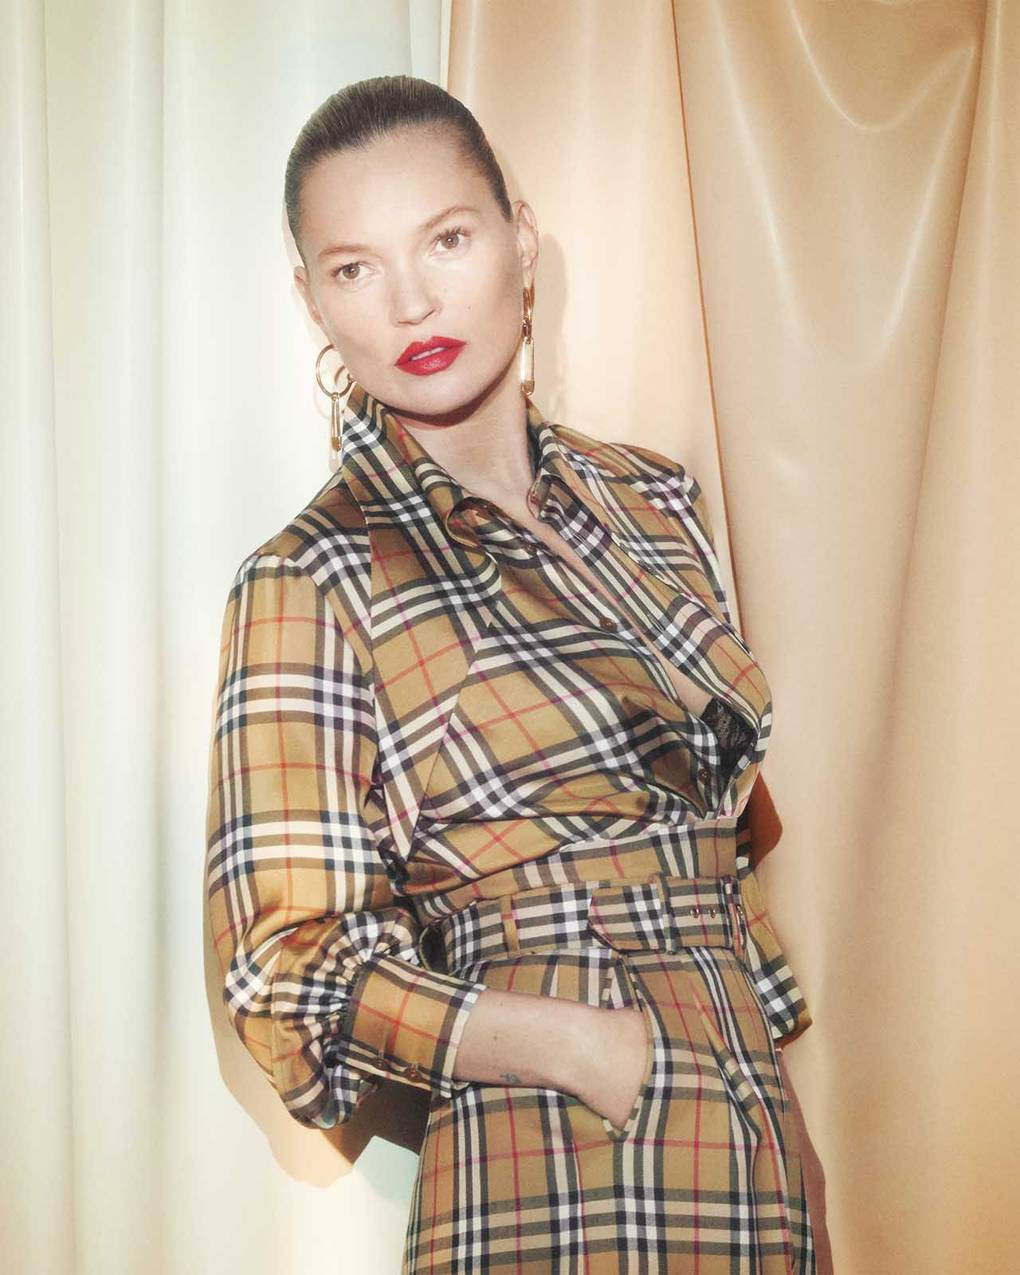 ce2eb97f318a Burberry Unveils Collaboration With Vivienne Westwood And It's Brilliant |  British Vogue